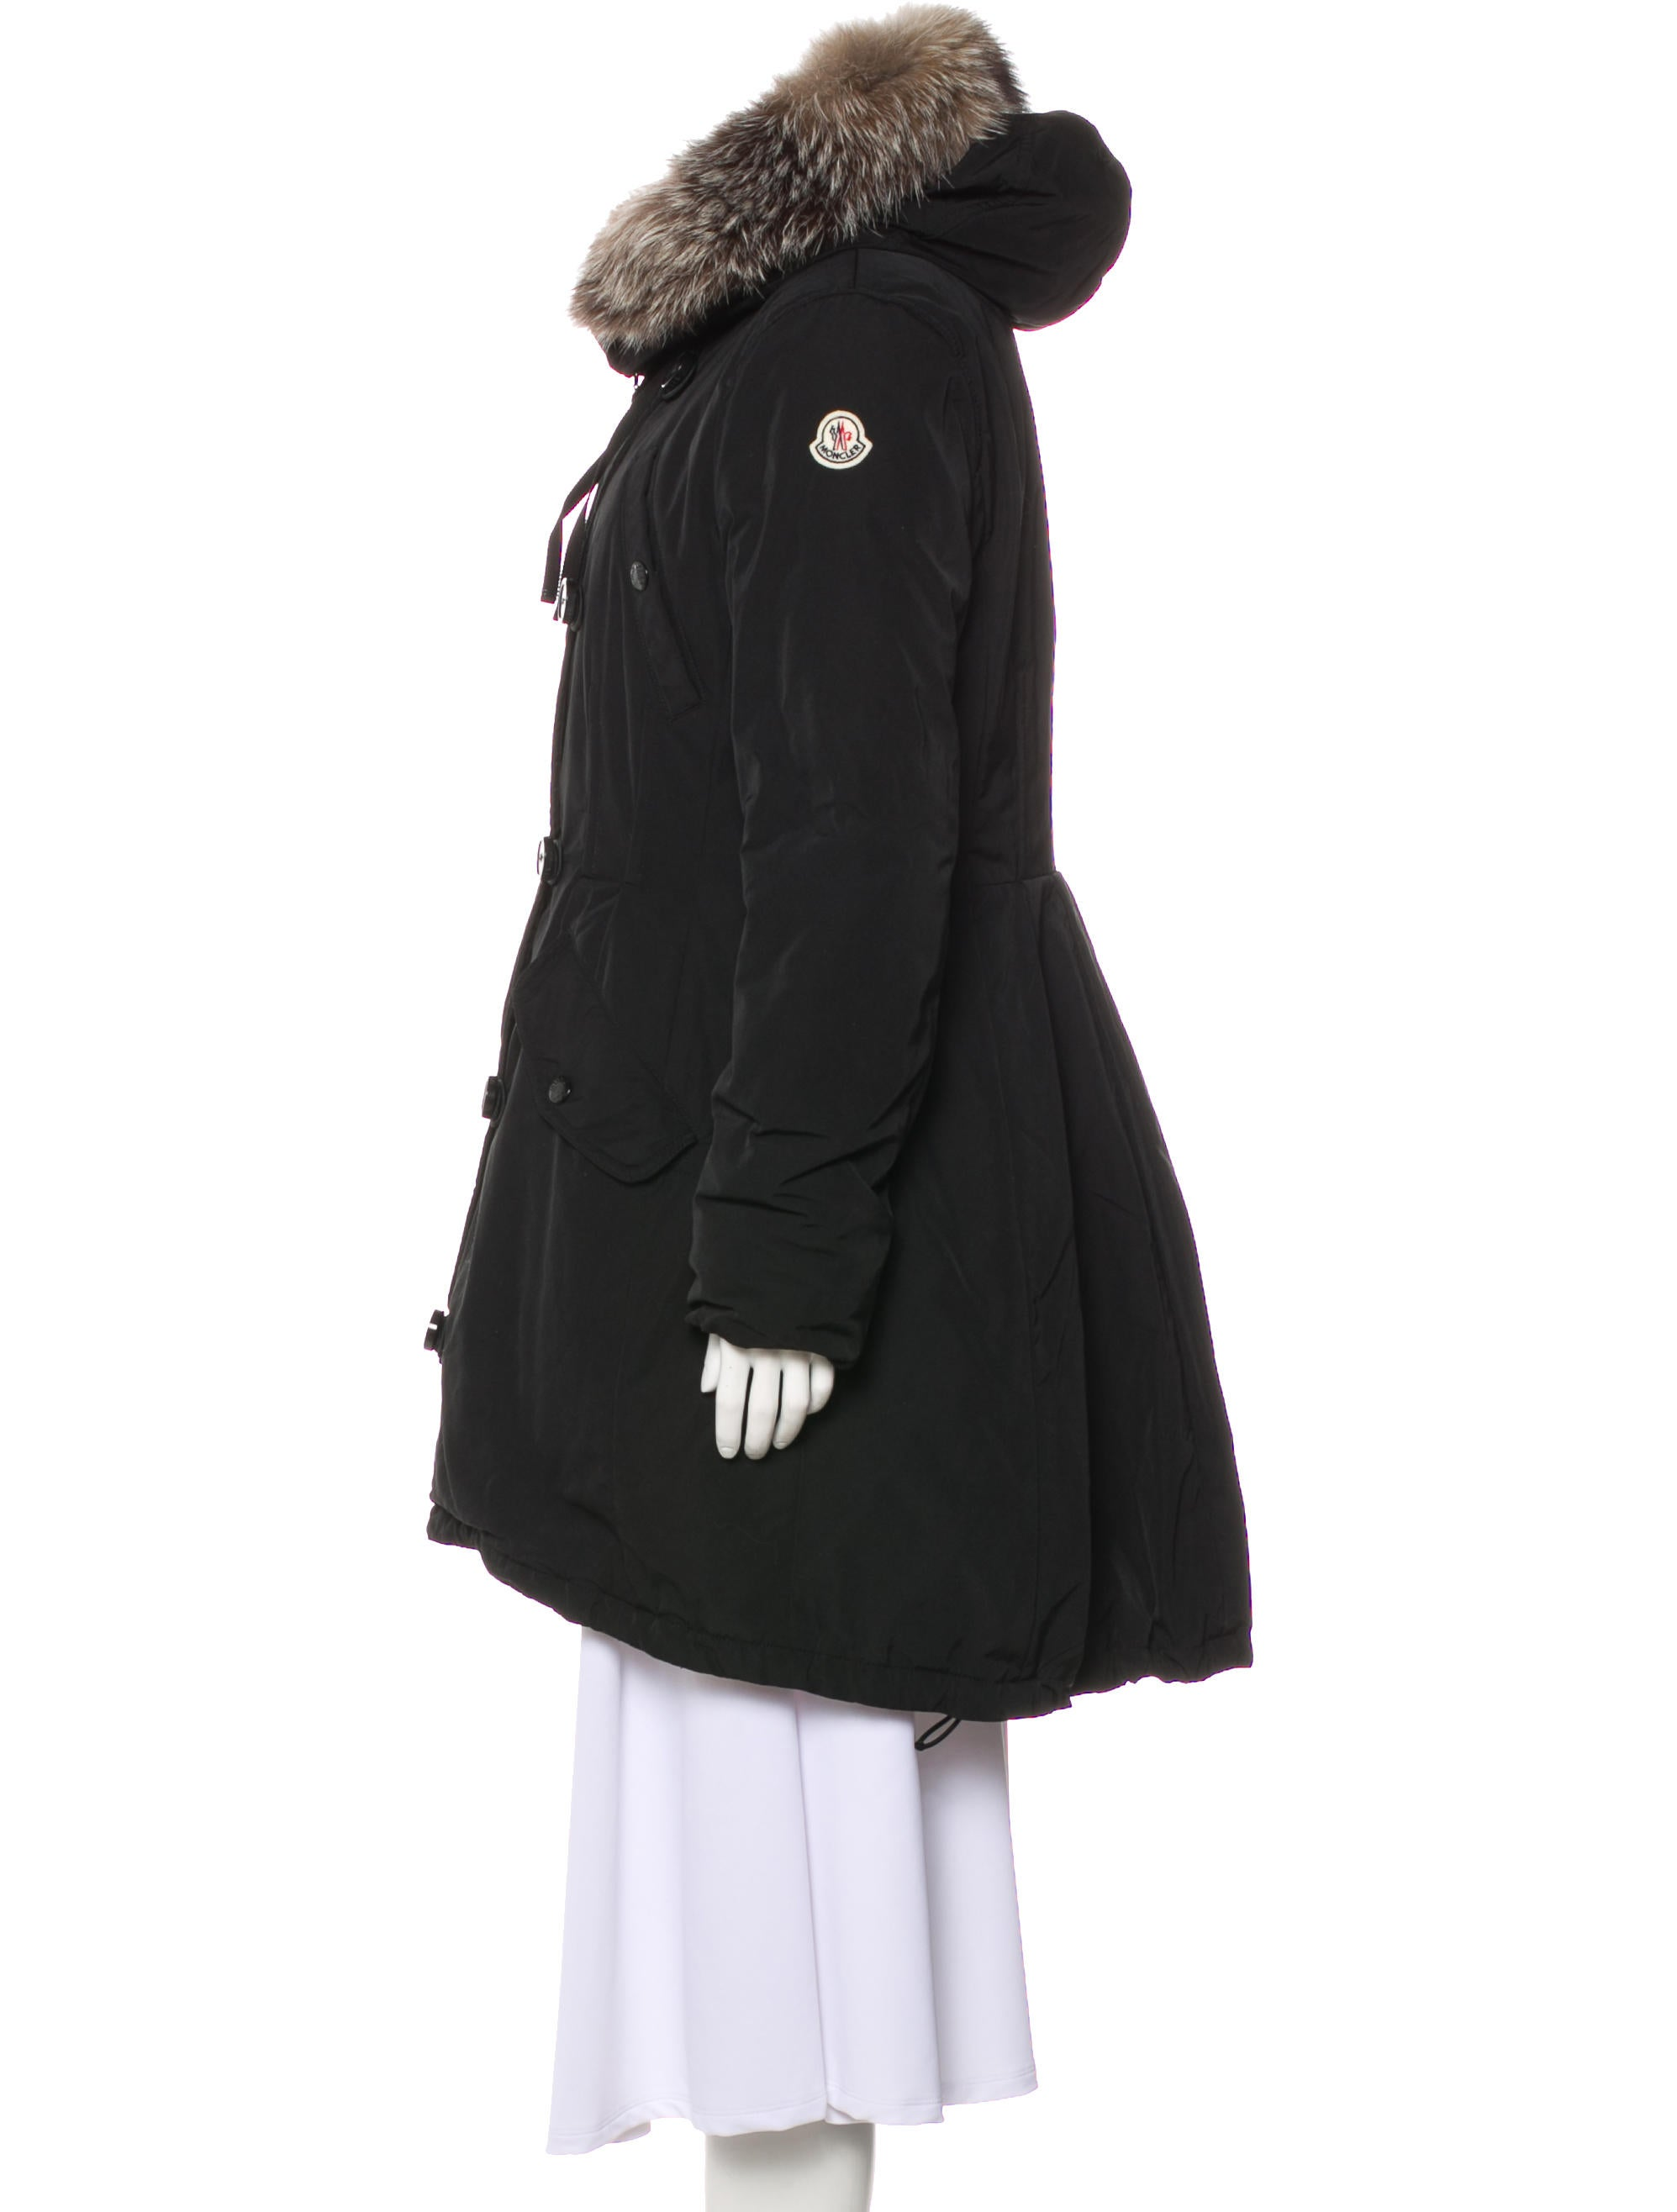 Moncler Hooded Short Coat Clothing Moc29811 The Realreal With Hood